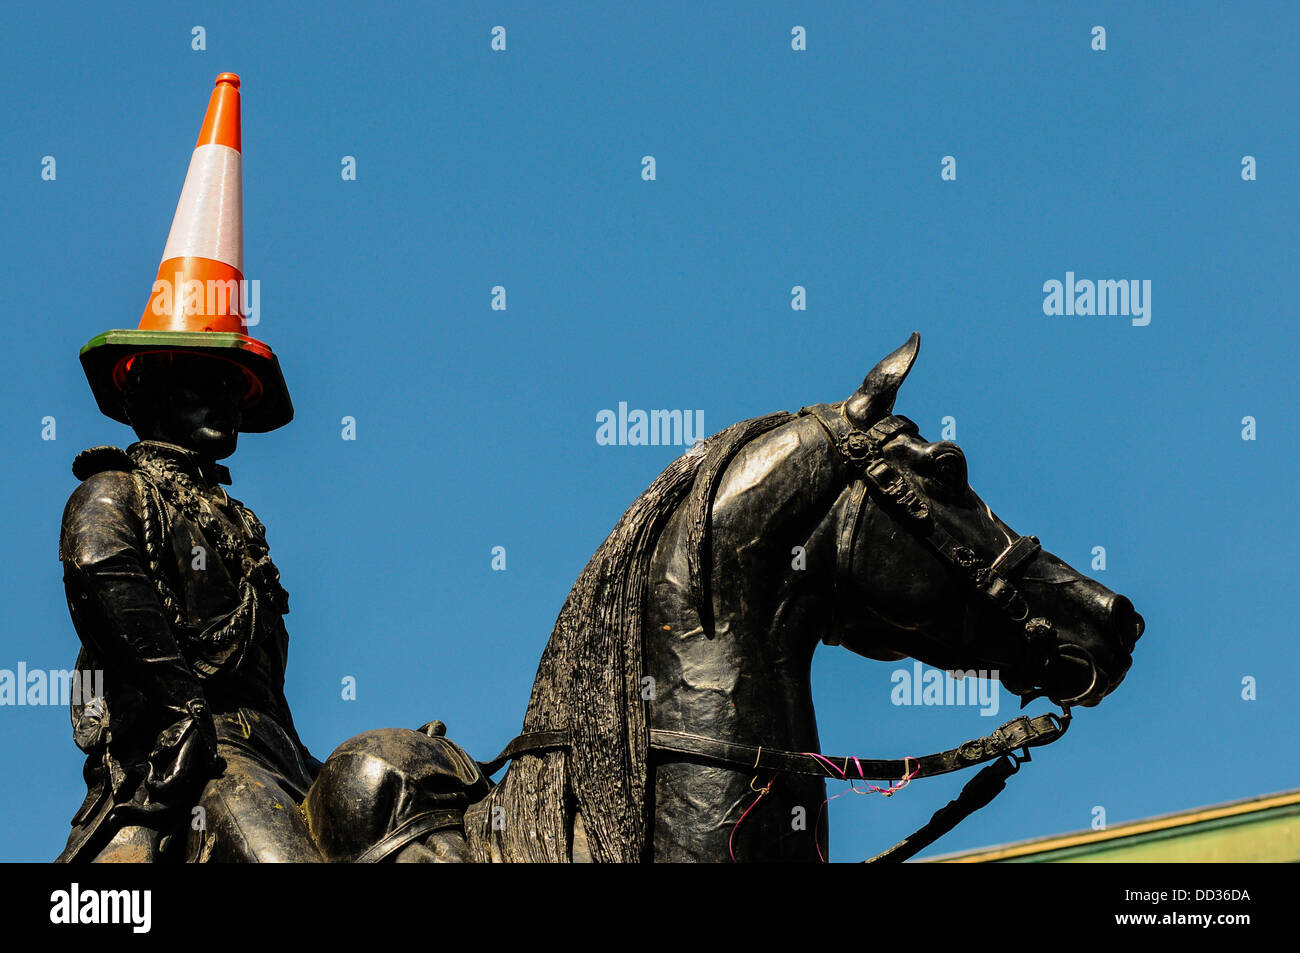 The Duke of Wellington Statue in Glasgow, with the cone on his head. The statue is outside the Gallery of Modern - Stock Image